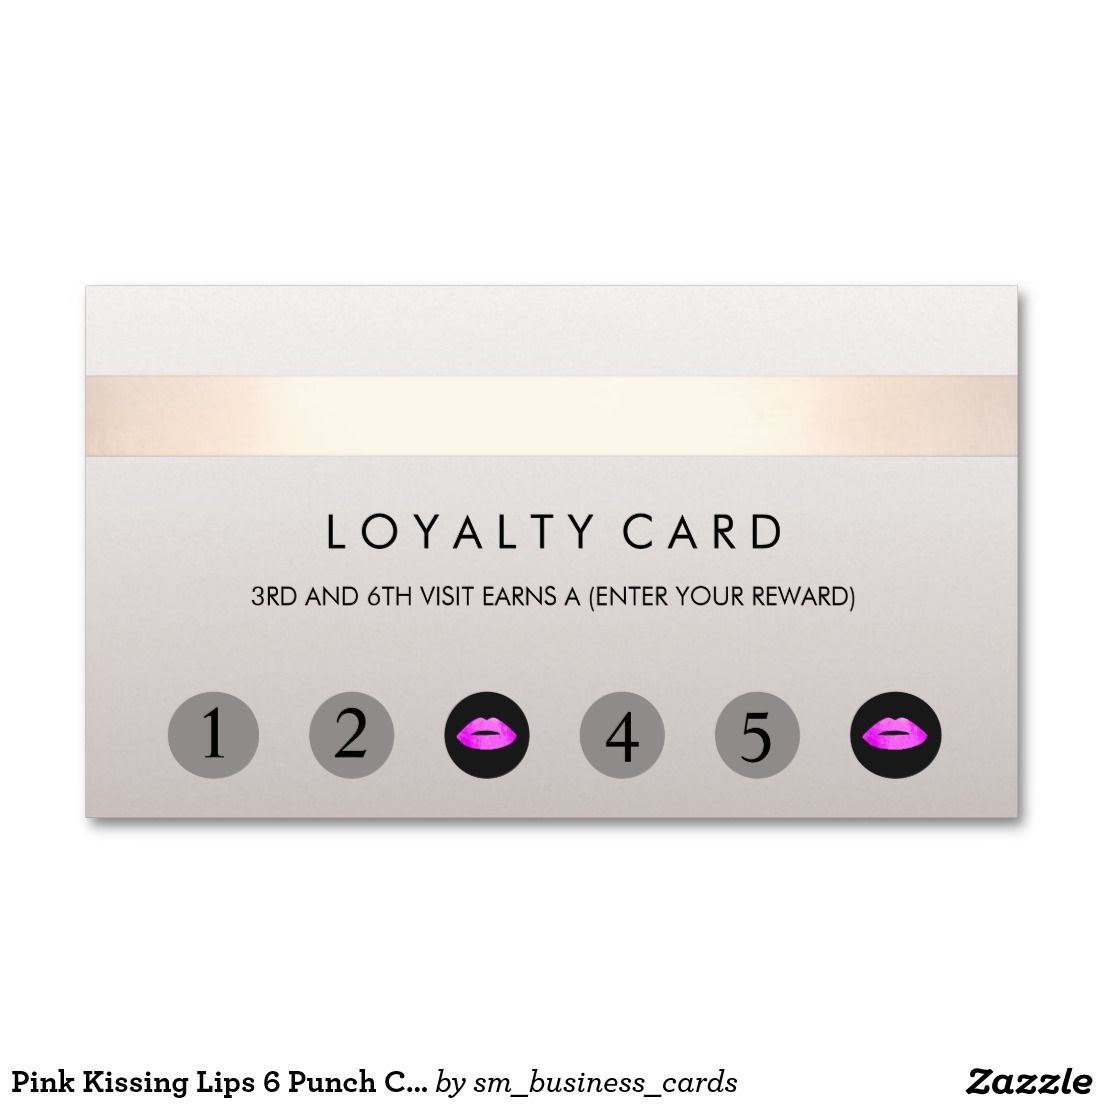 Pink Kissing Lips 18 Punch Customer Loyalty Card  Zazzle.com in